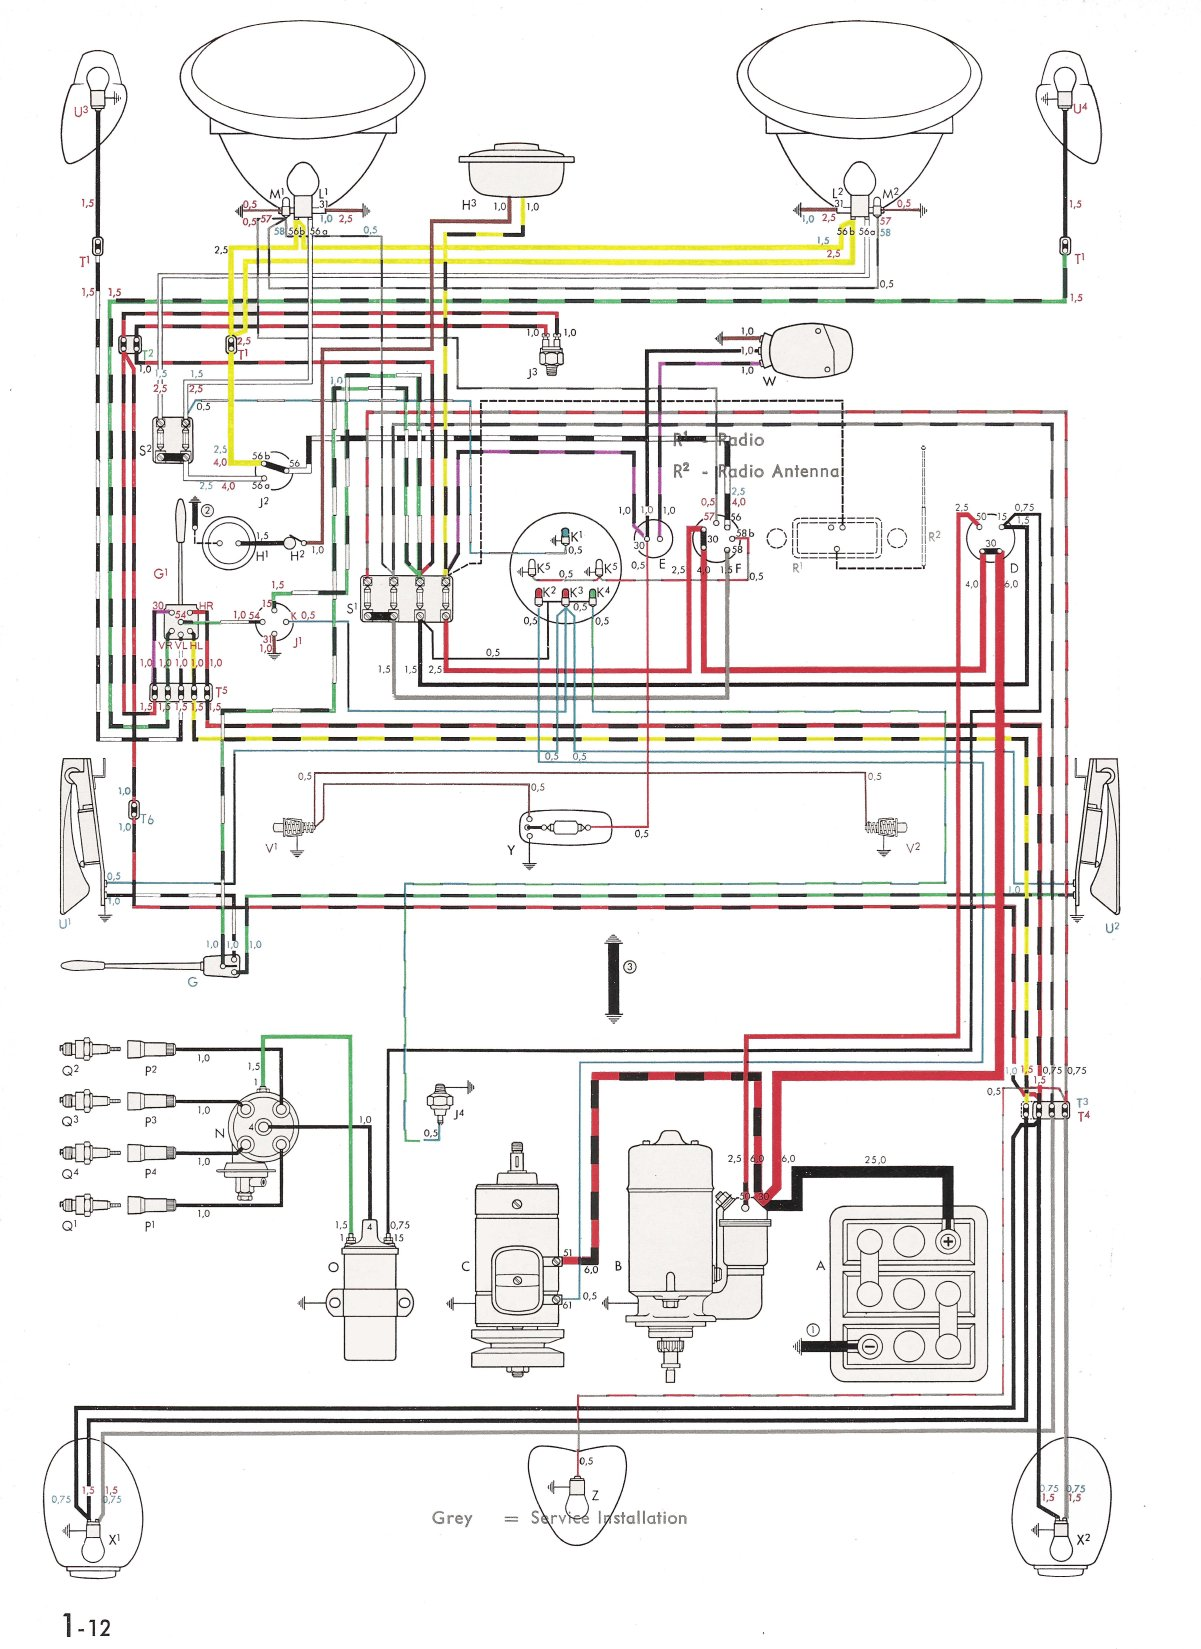 thesamba com type 1 wiring diagrams rh thesamba com vw wiring diagram alternator vw wiring diagrams free downloads